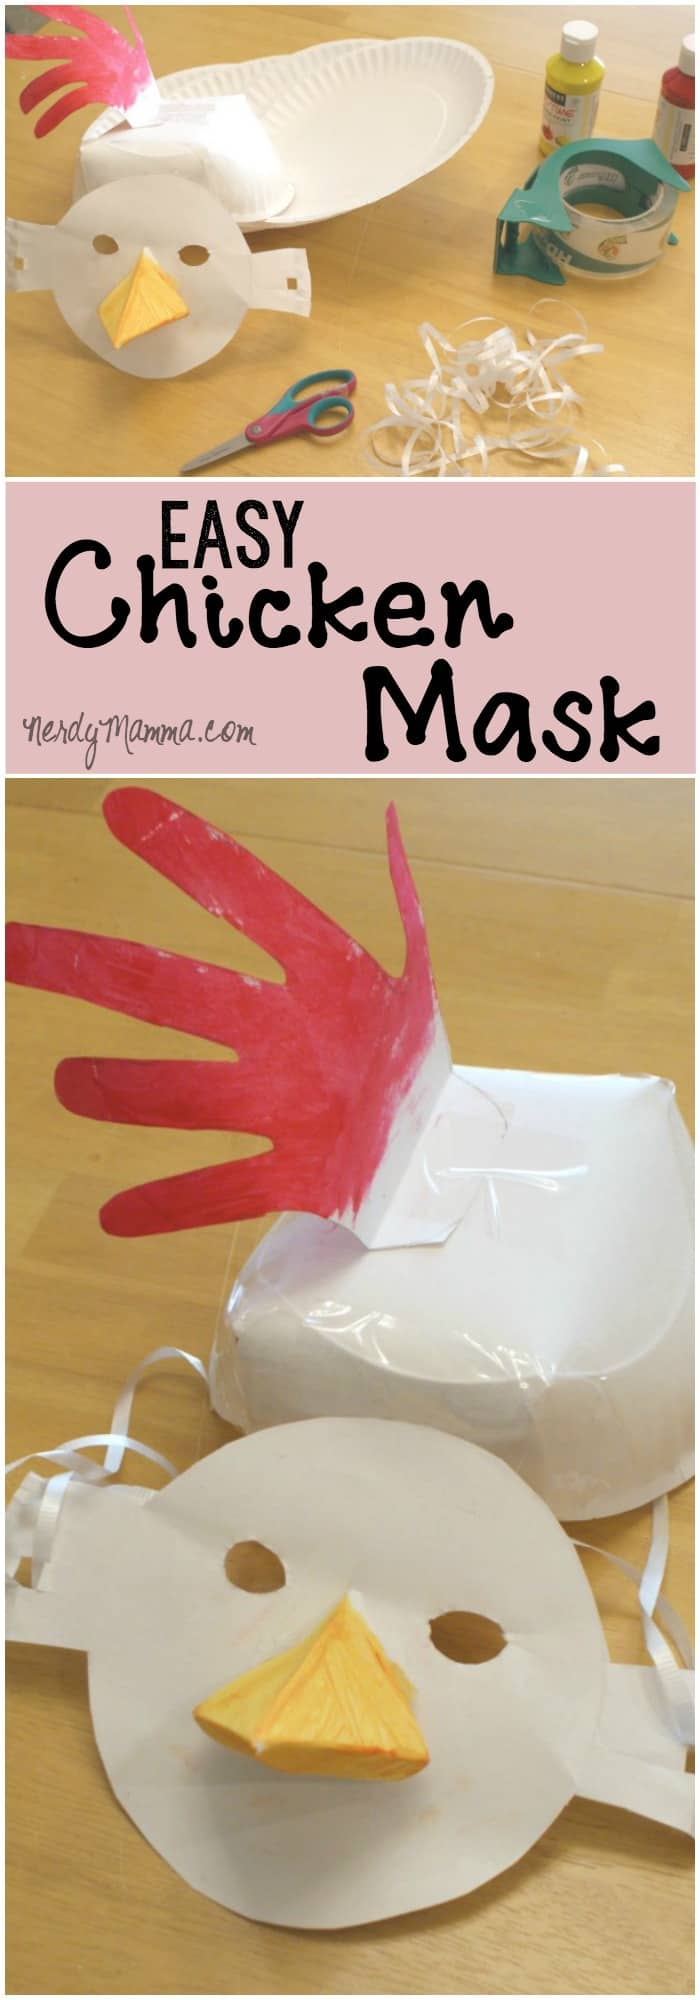 This is such a fun craft project to do with little kids. They'll just think this funny, easy chicken mask is so silly!